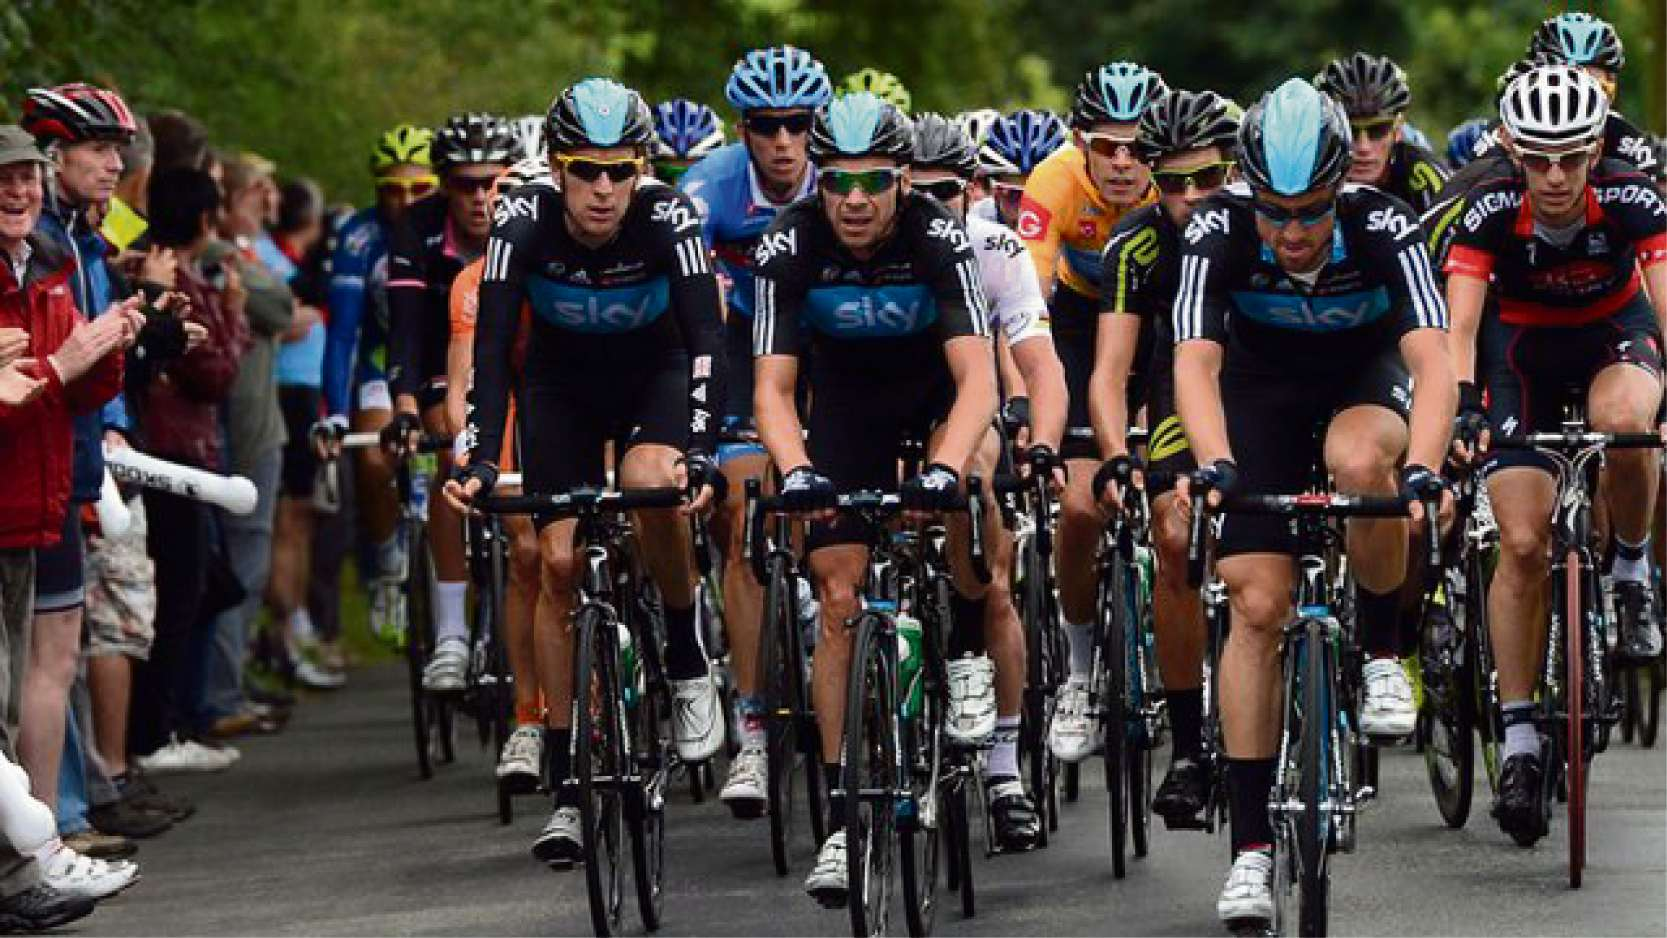 Top cyclists come to Stroud for Tour of Britain